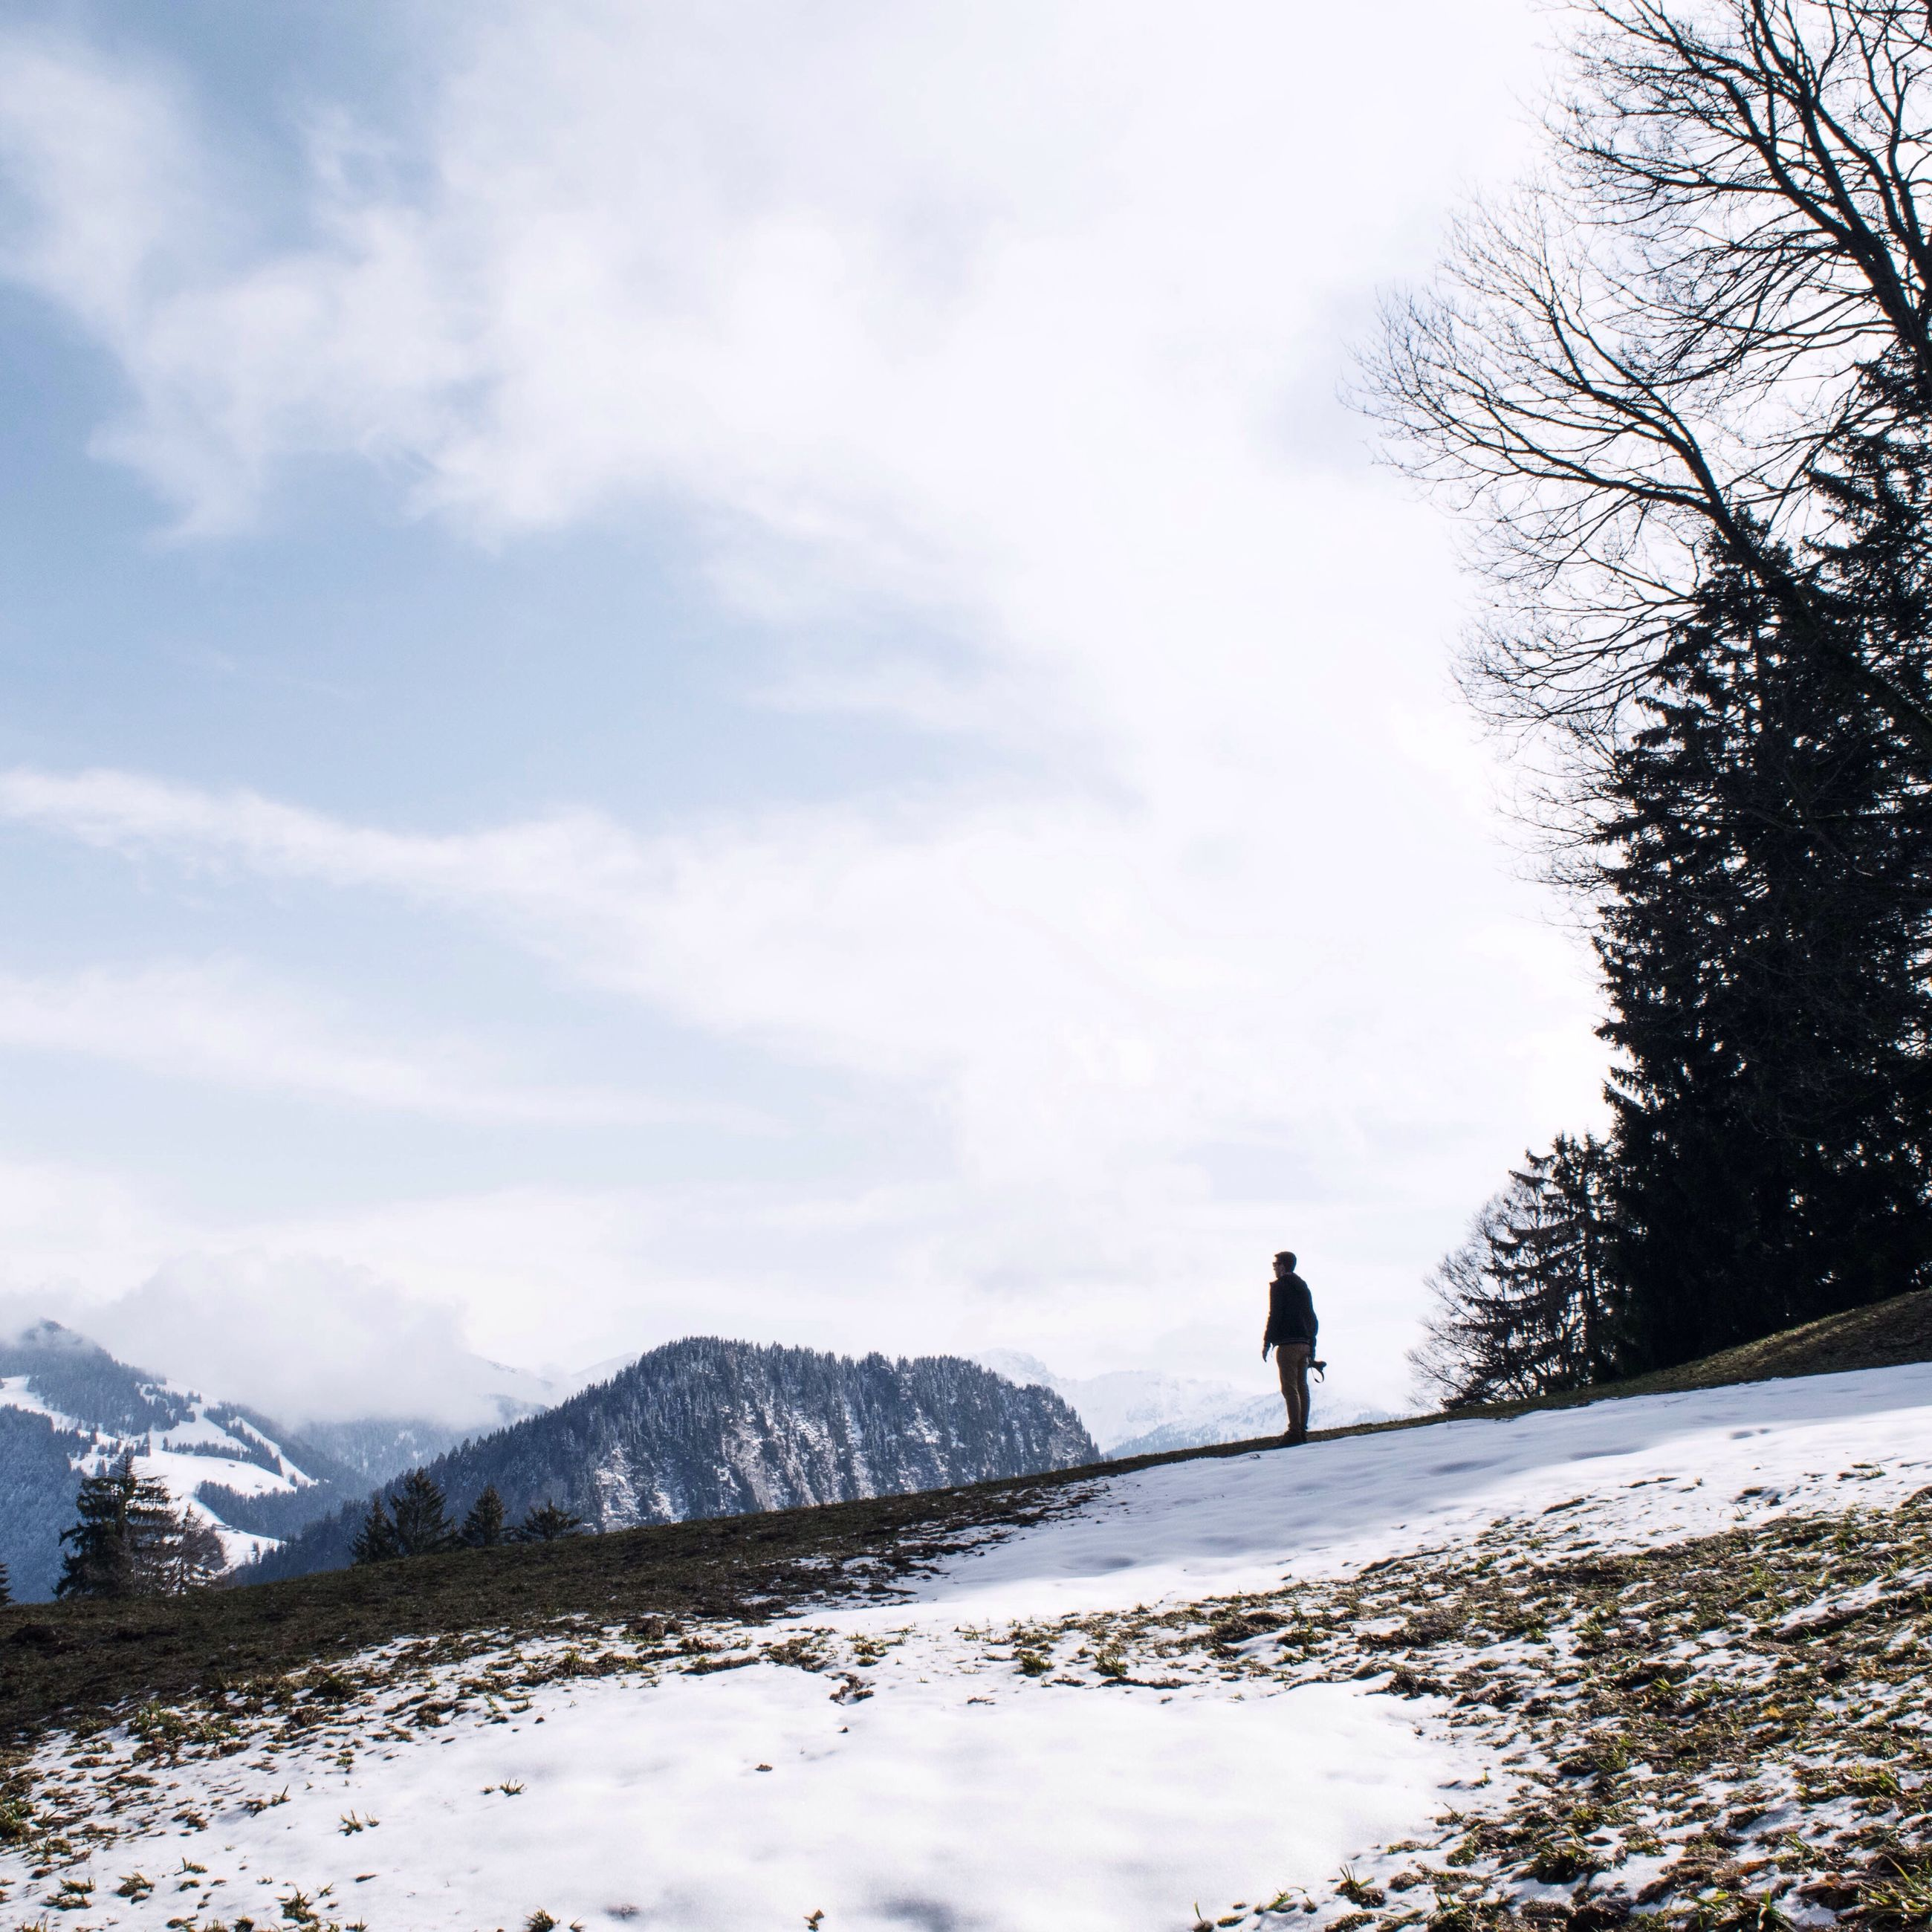 snow, winter, cold temperature, season, weather, mountain, tranquil scene, leisure activity, sky, tranquility, lifestyles, rear view, full length, nature, men, beauty in nature, walking, scenics